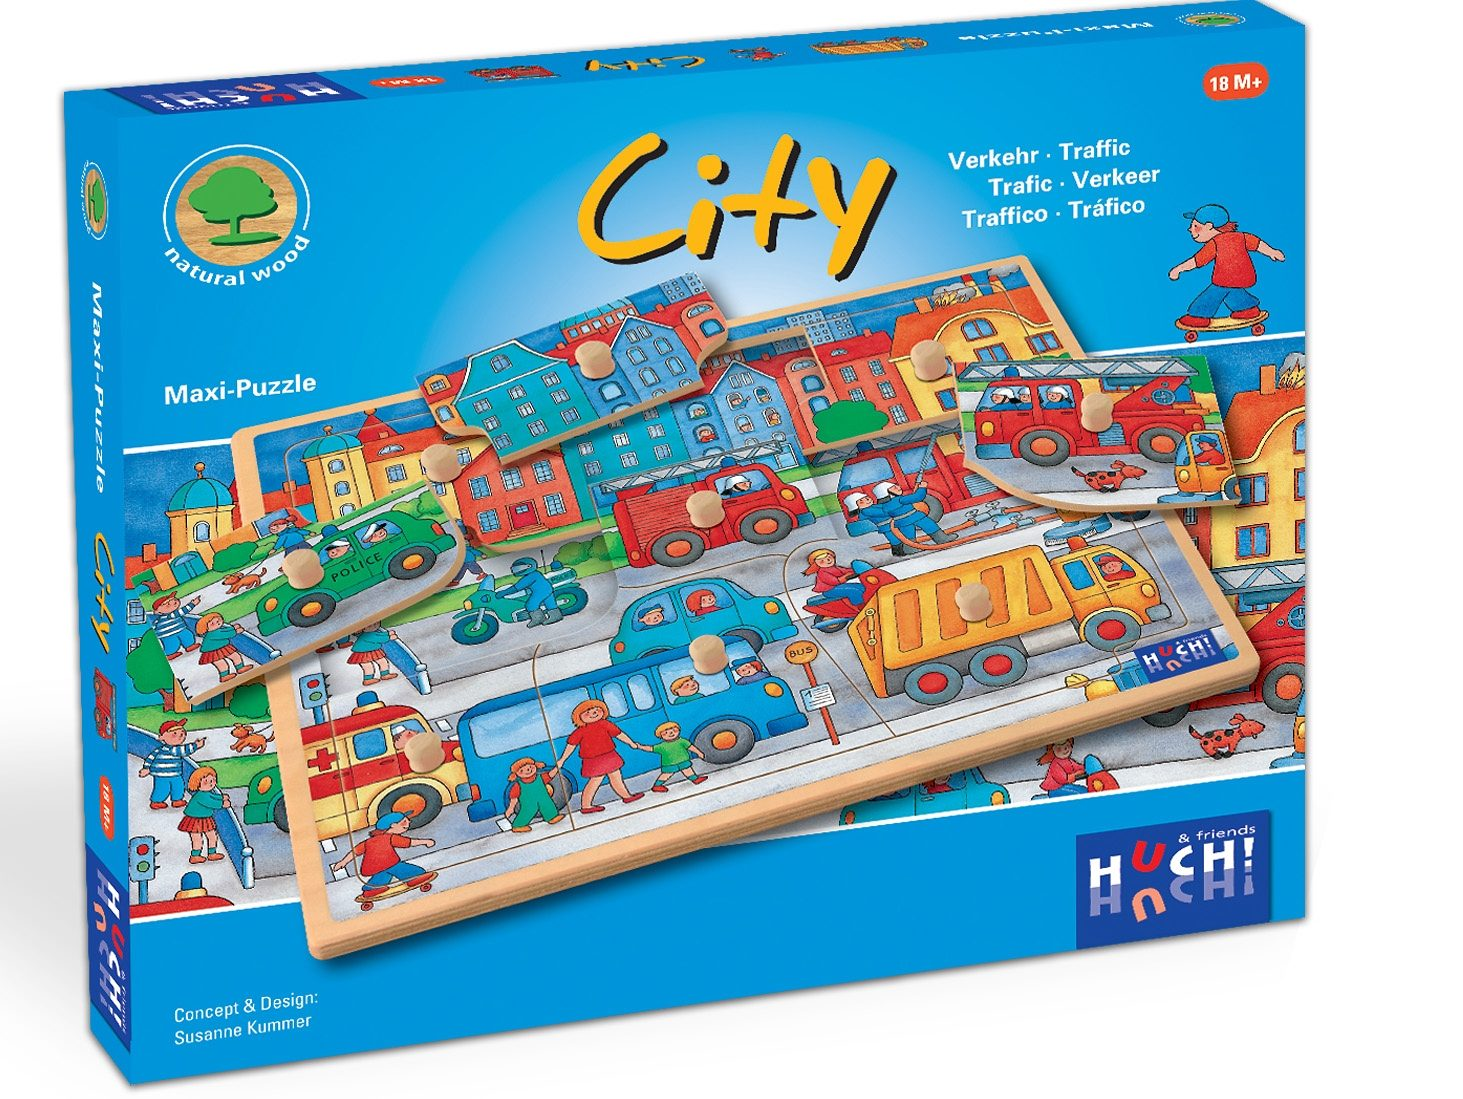 Huch! & friends Puzzle, 9 Maxi-Teile, »Wooden Line City«